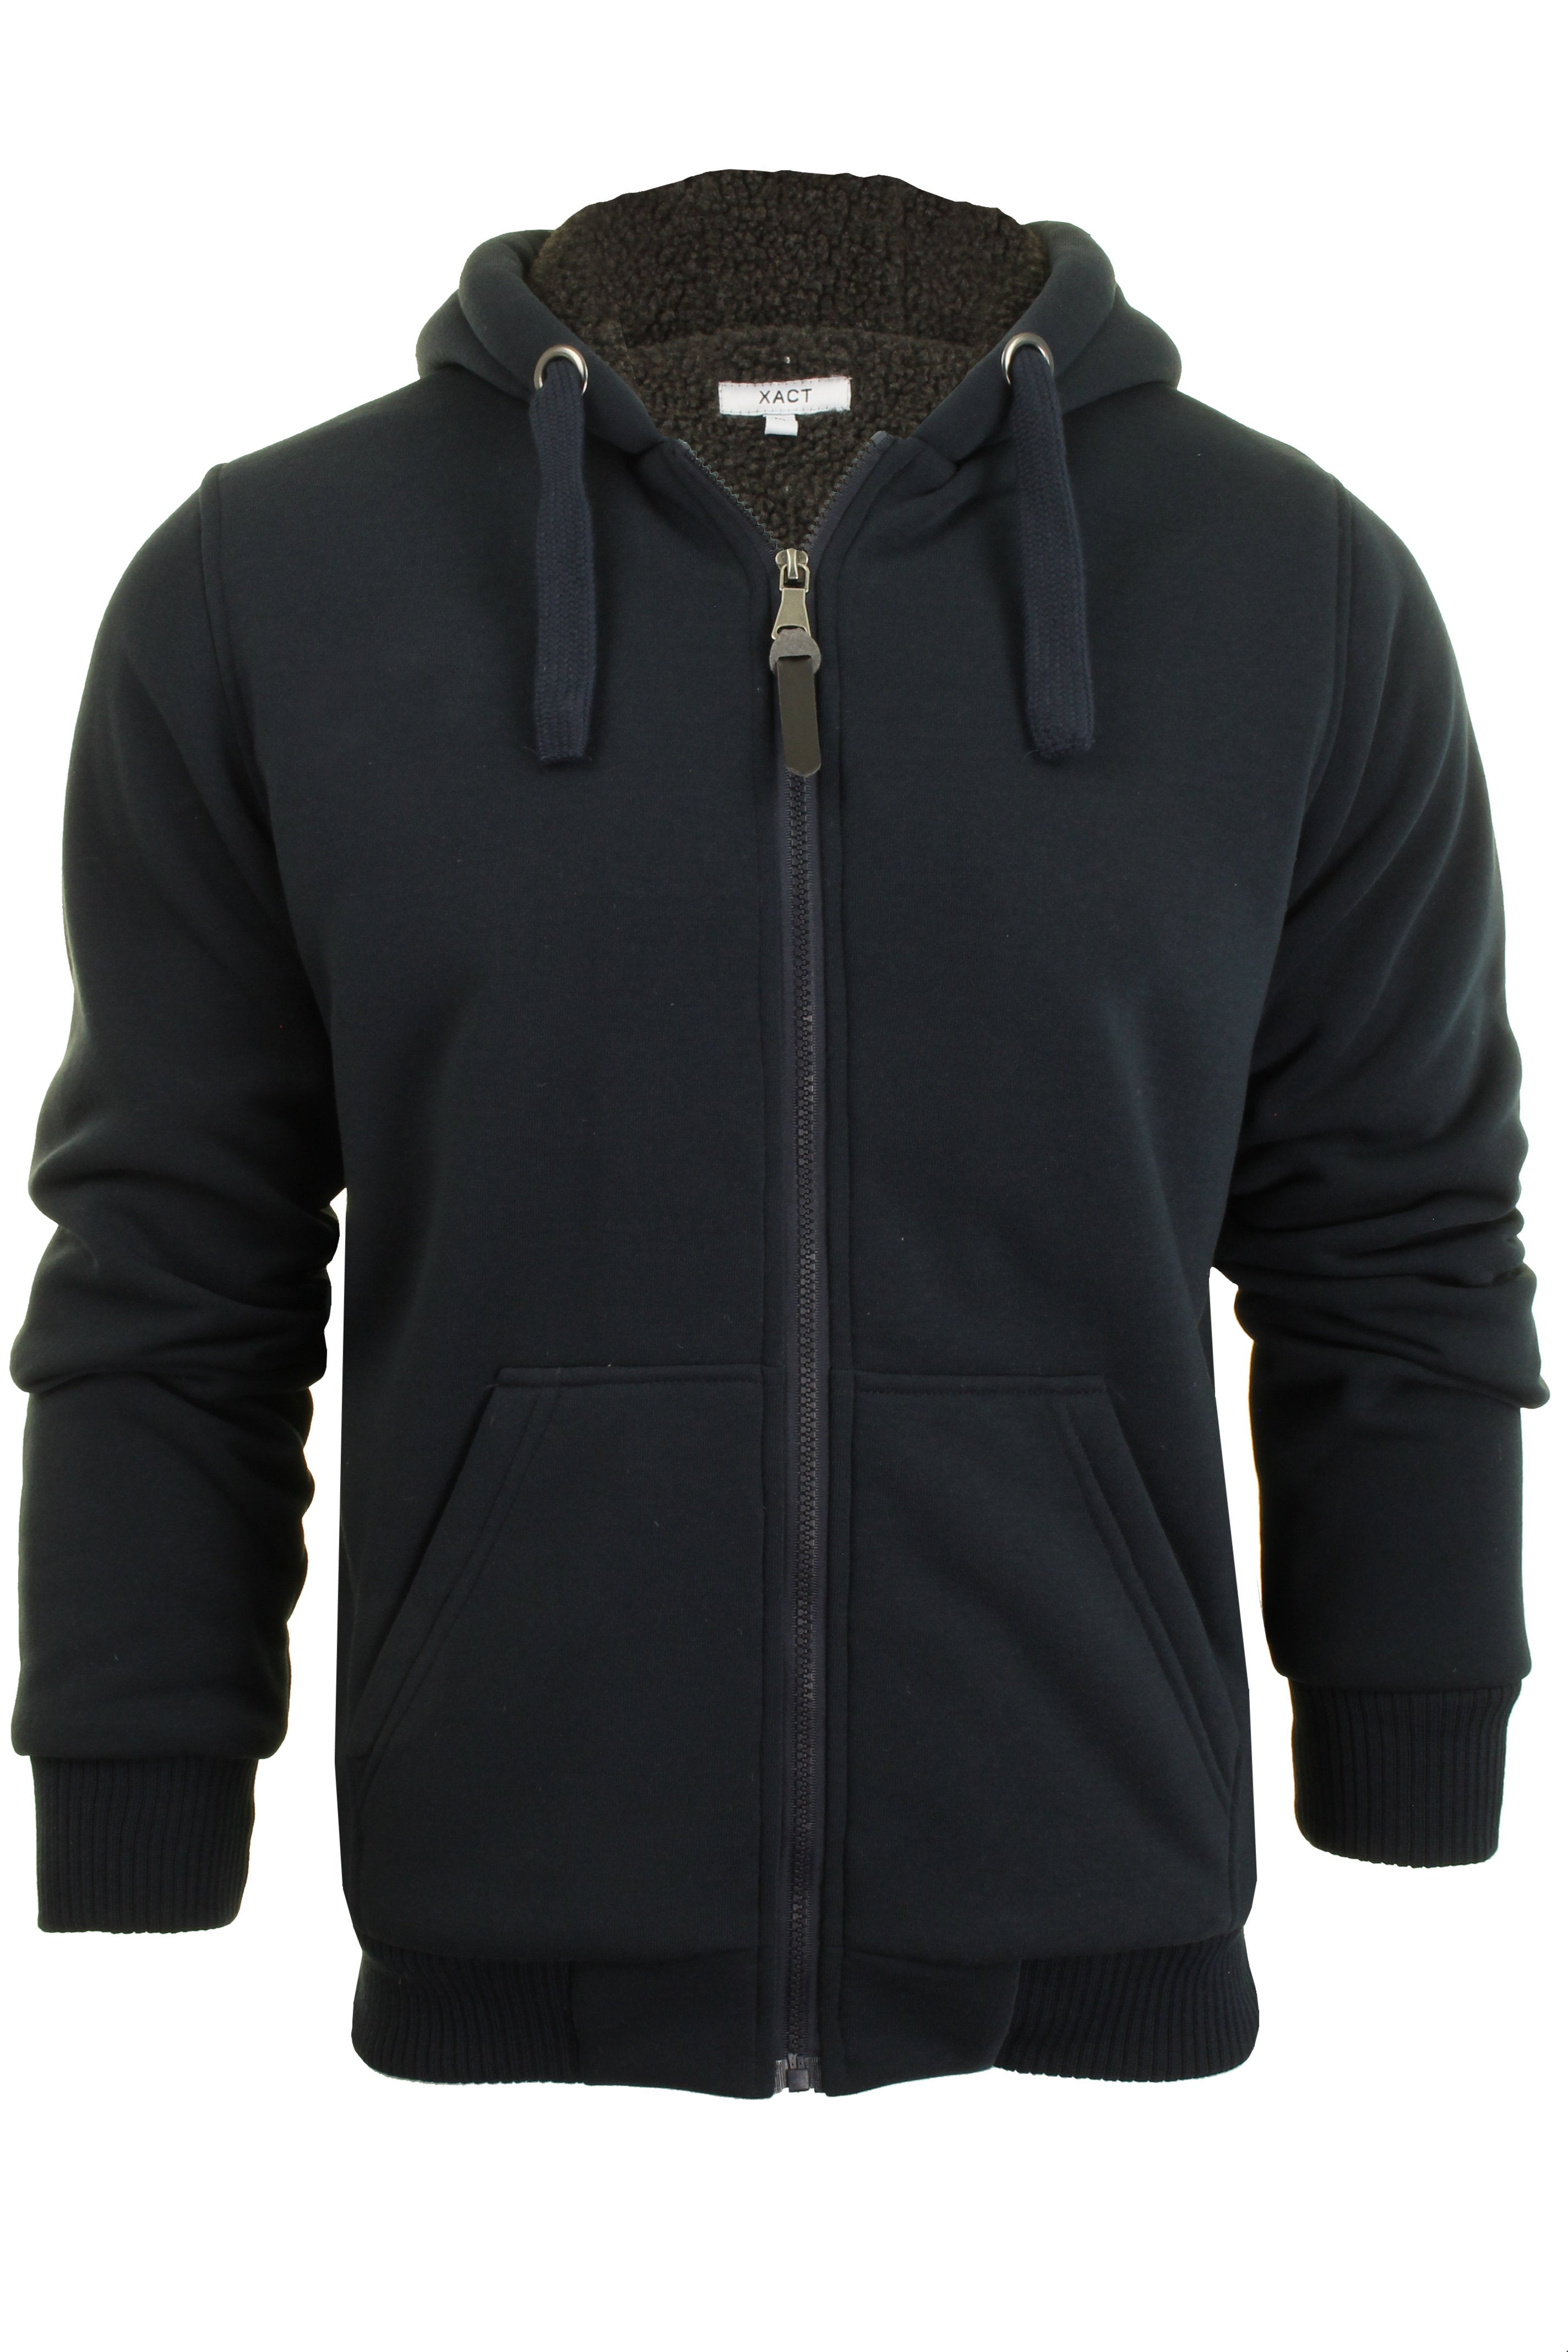 Xact Mens Hoodie Heavy Sherpa Lined Jacket Zone-Main Image